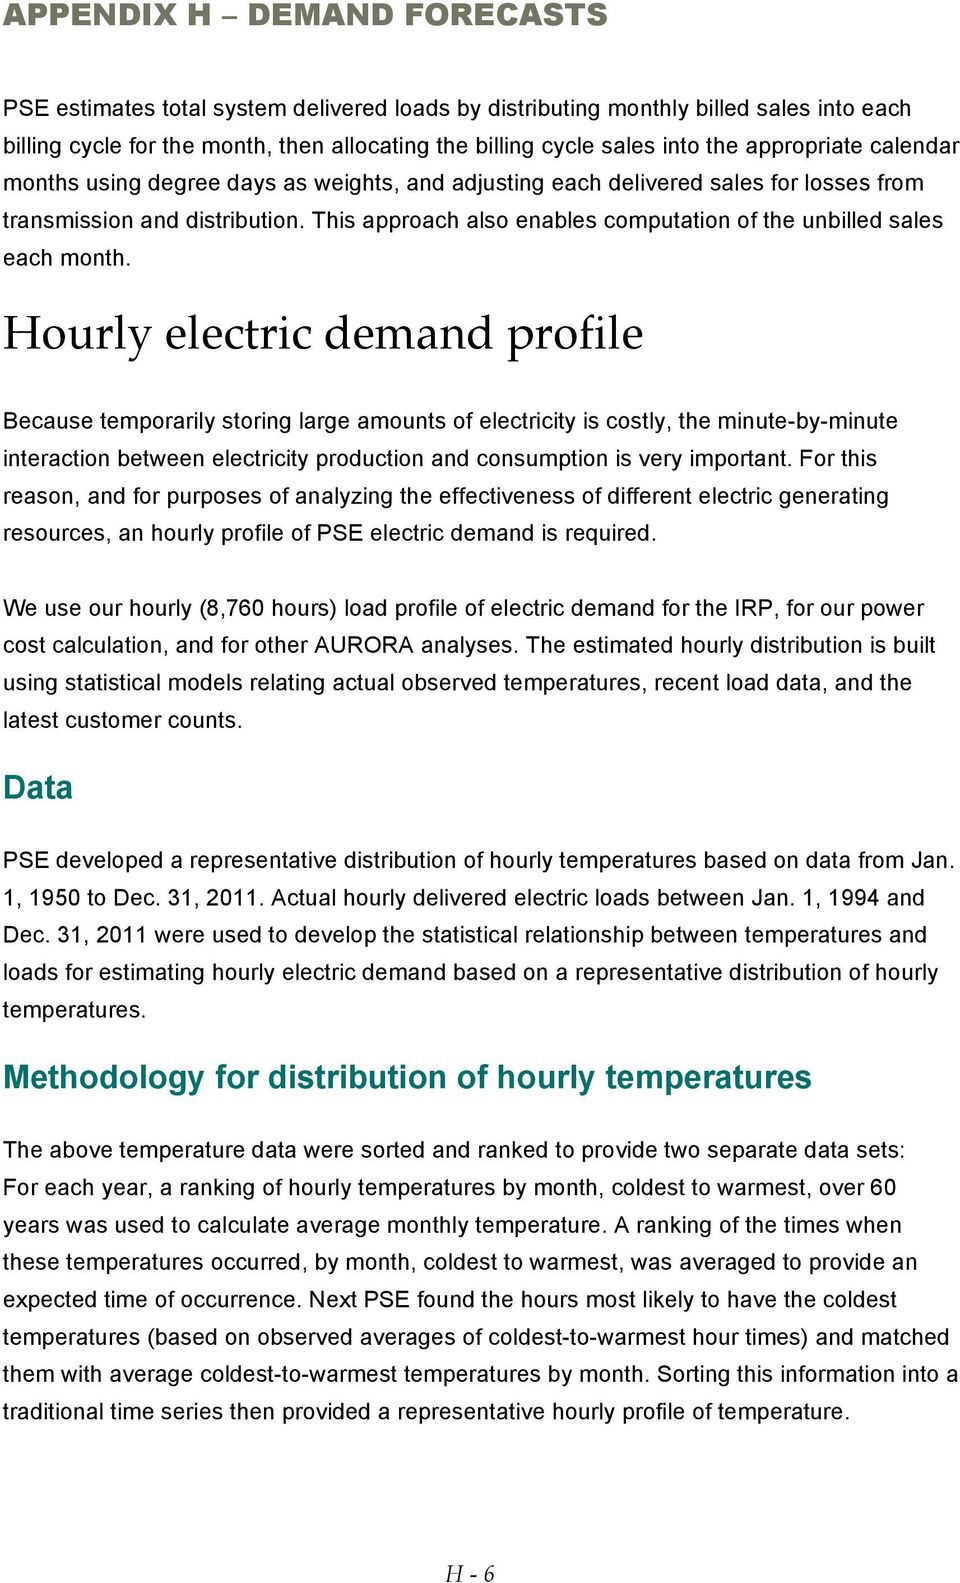 Hourly electric demand profile Because temporarily storing large amounts of electricity is costly, the minute-by-minute interaction between electricity production and consumption is very important.